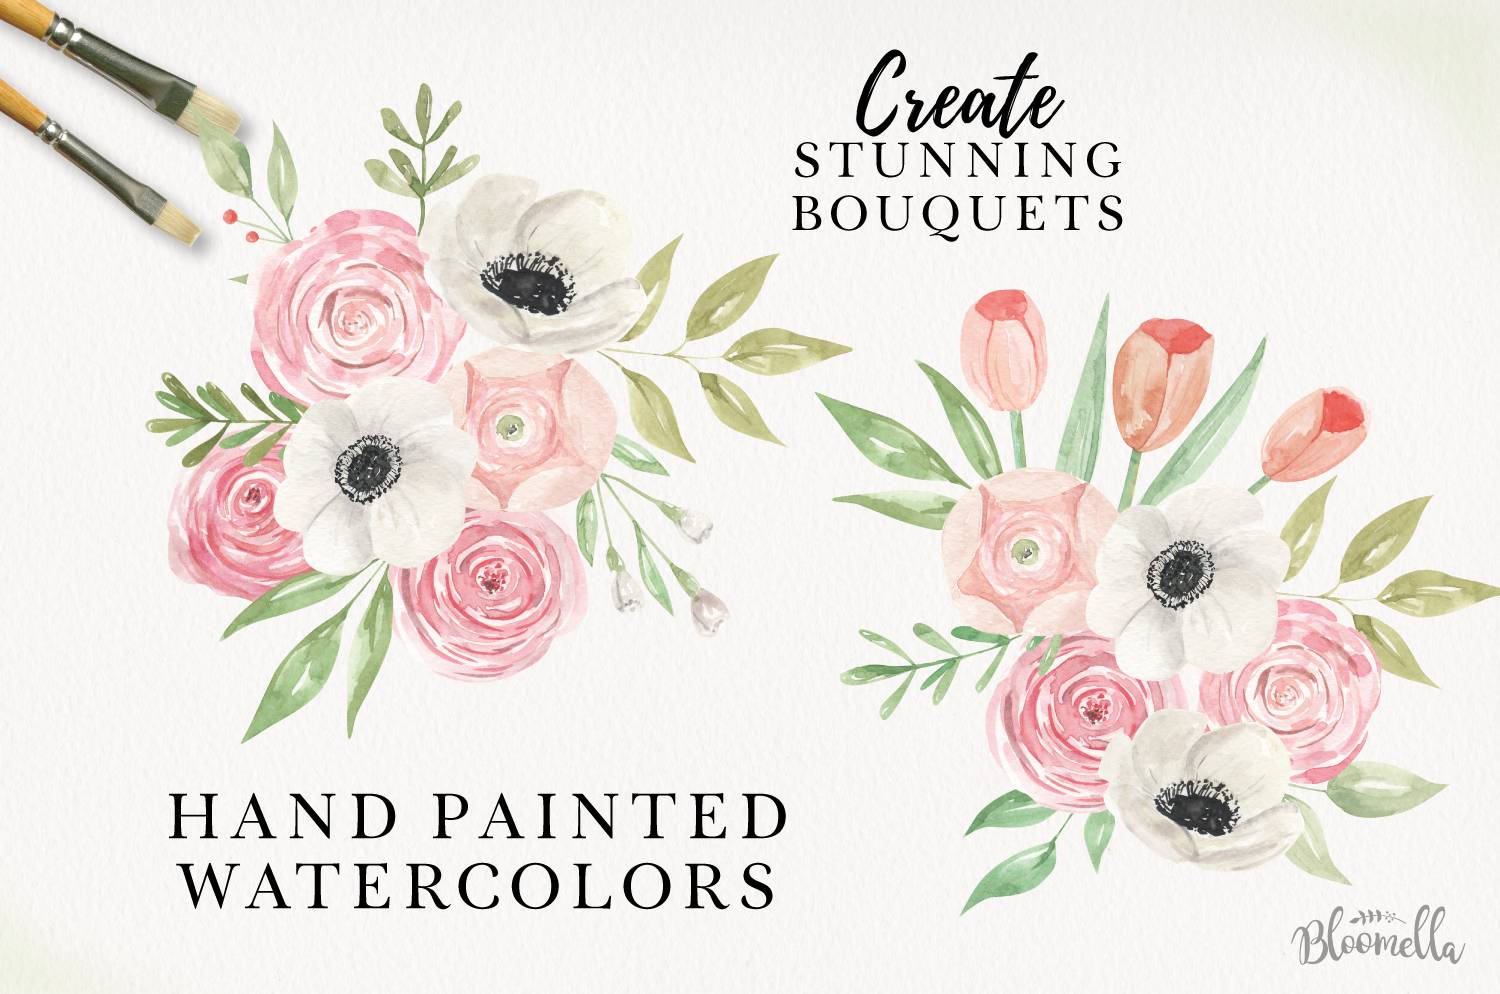 Sprung Watercolor Elements Flowers Pink Tulips Spring Peach example image 2